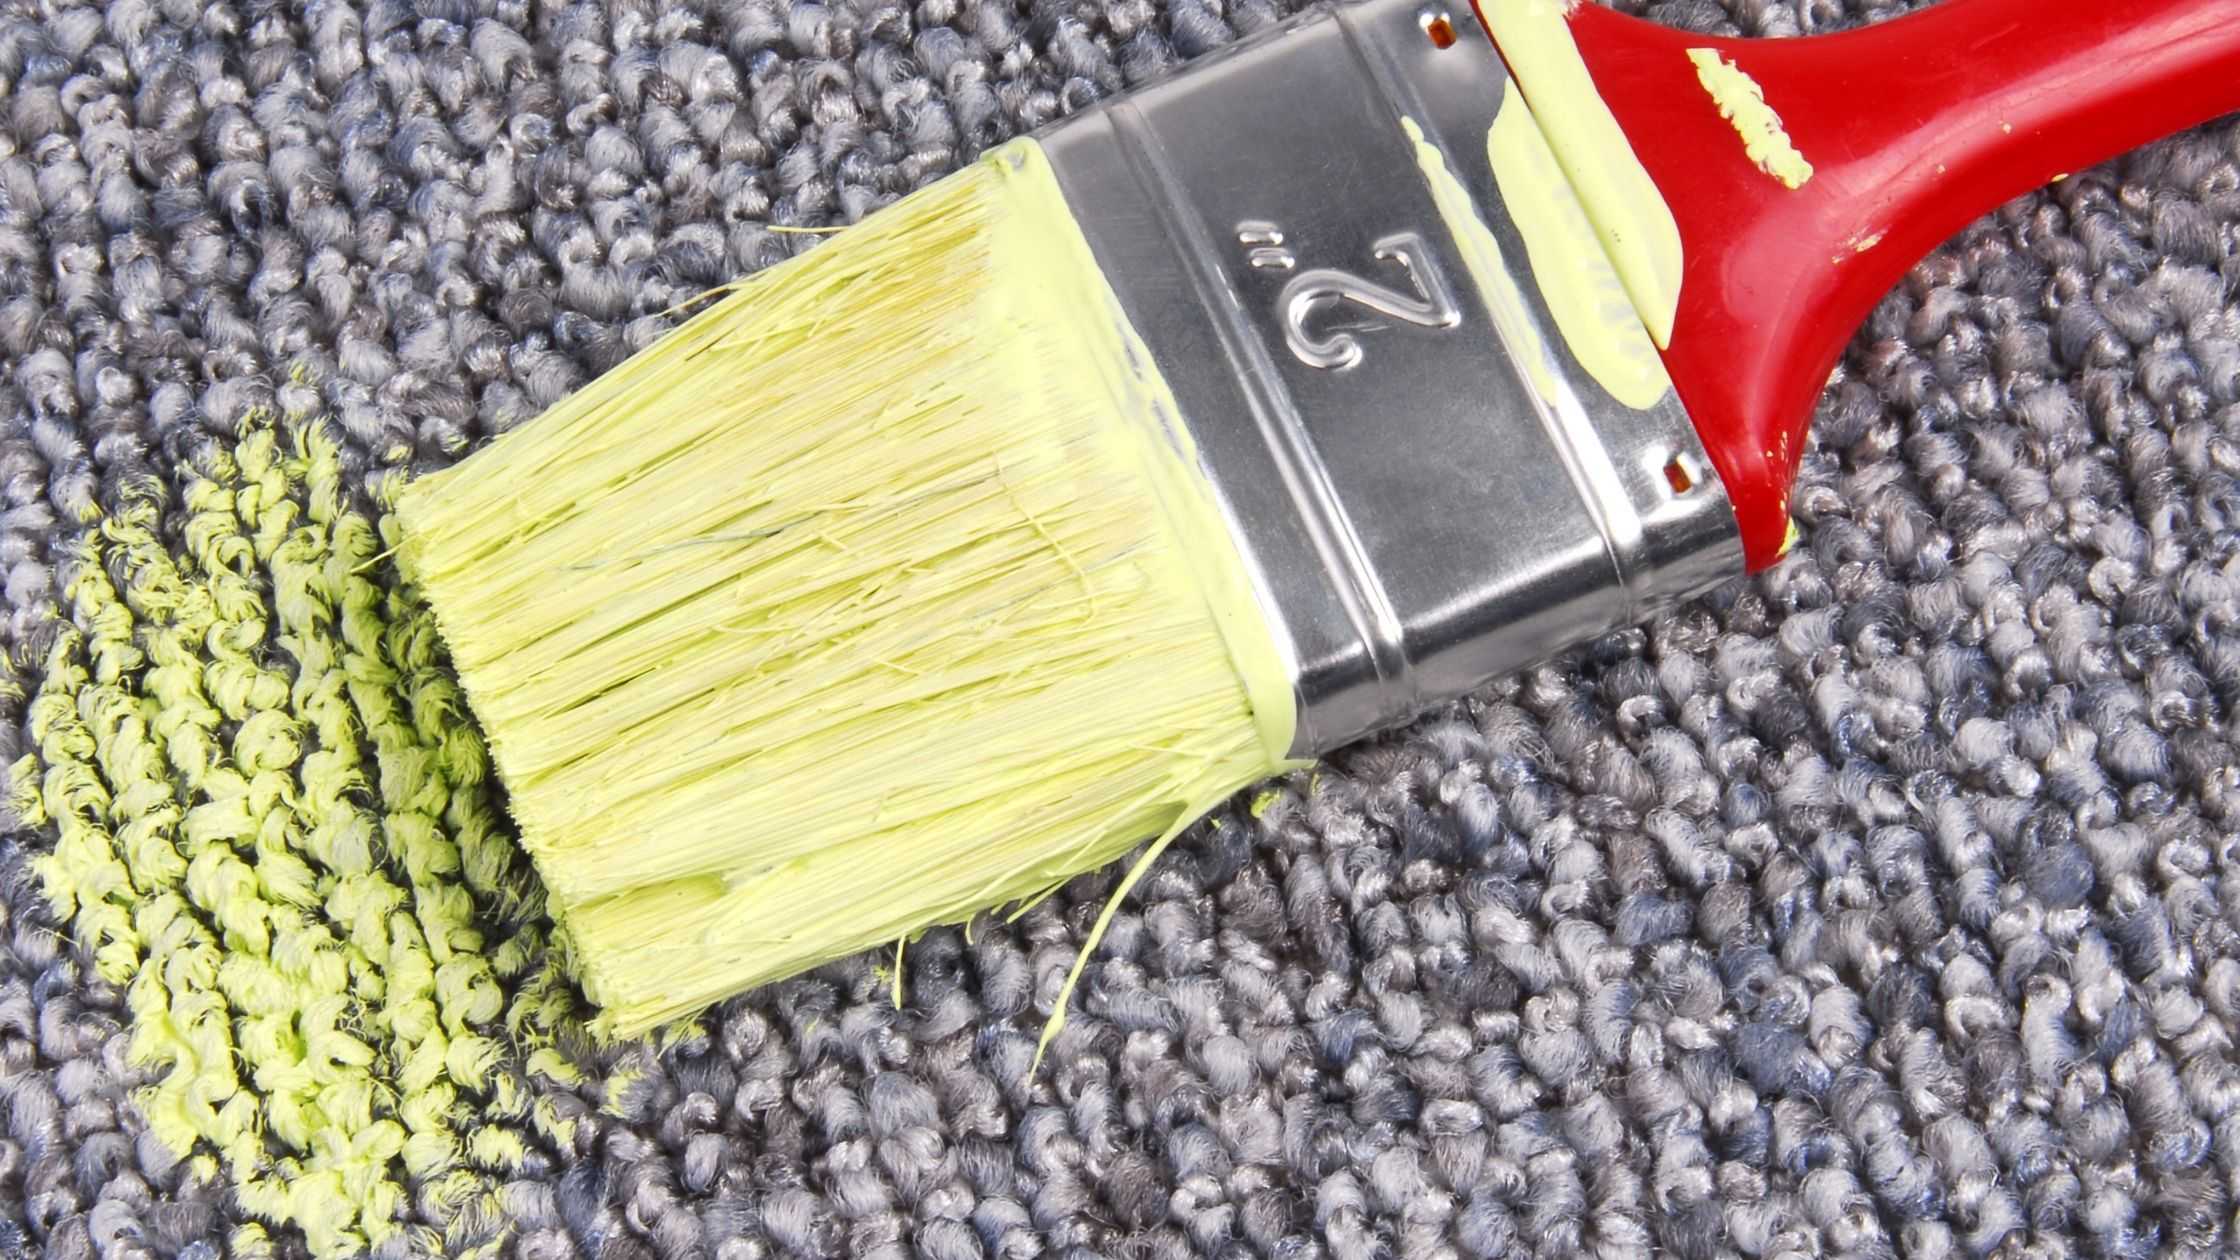 Dealing with dry paint on carpet